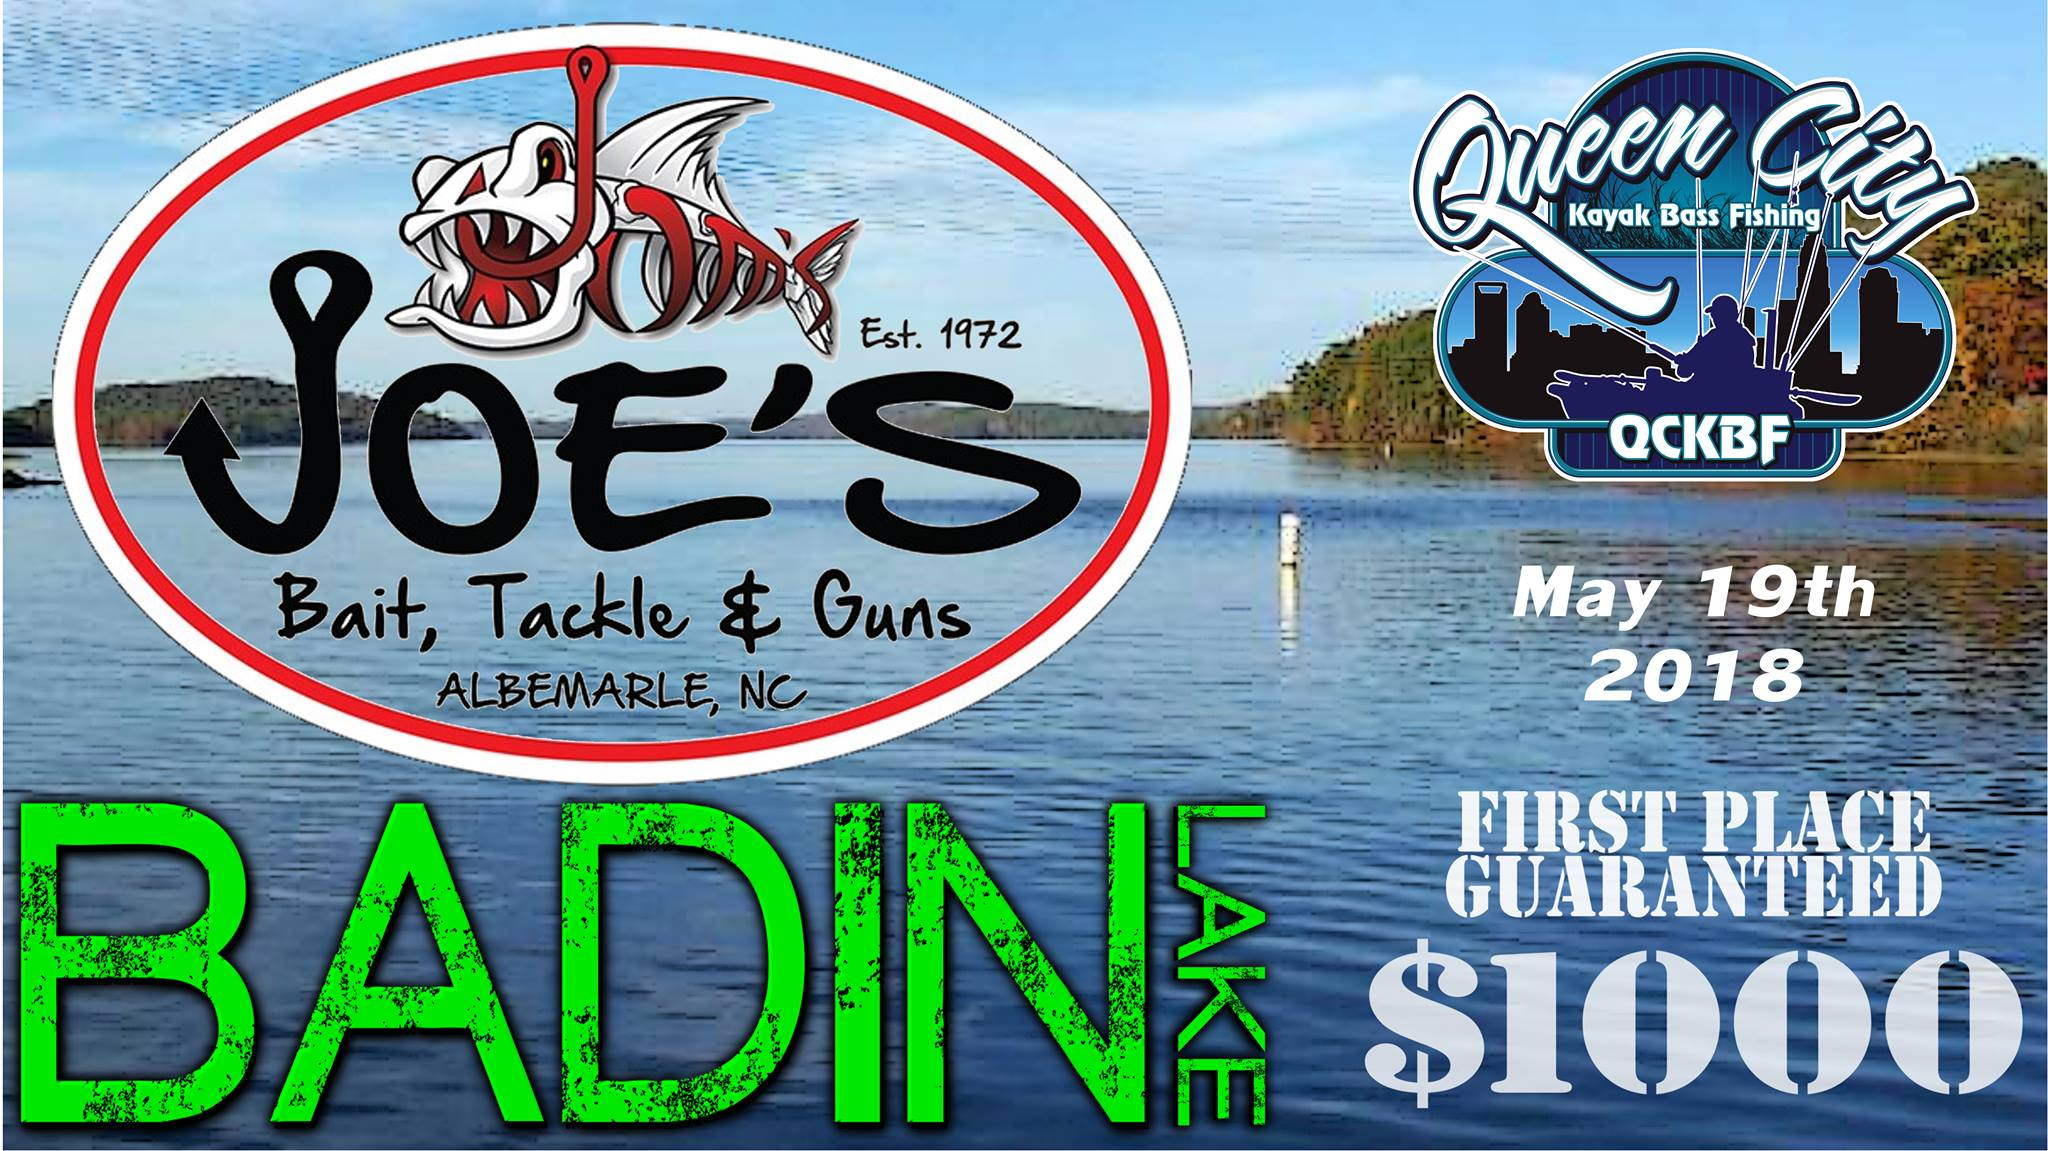 QCKBF Event 4 Presented by Joe's Bait, Tackle & Guns